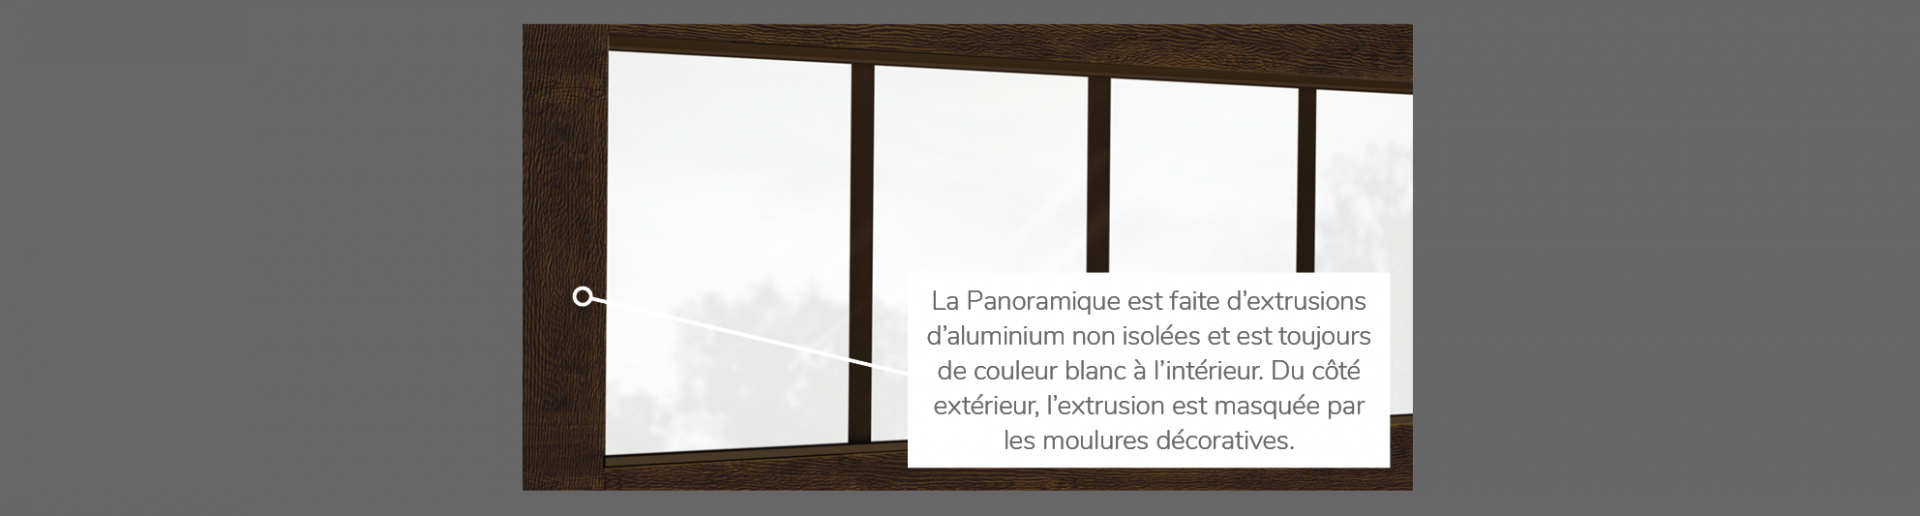 Panoramique 4 rectangles, disponible pour la porte R-16